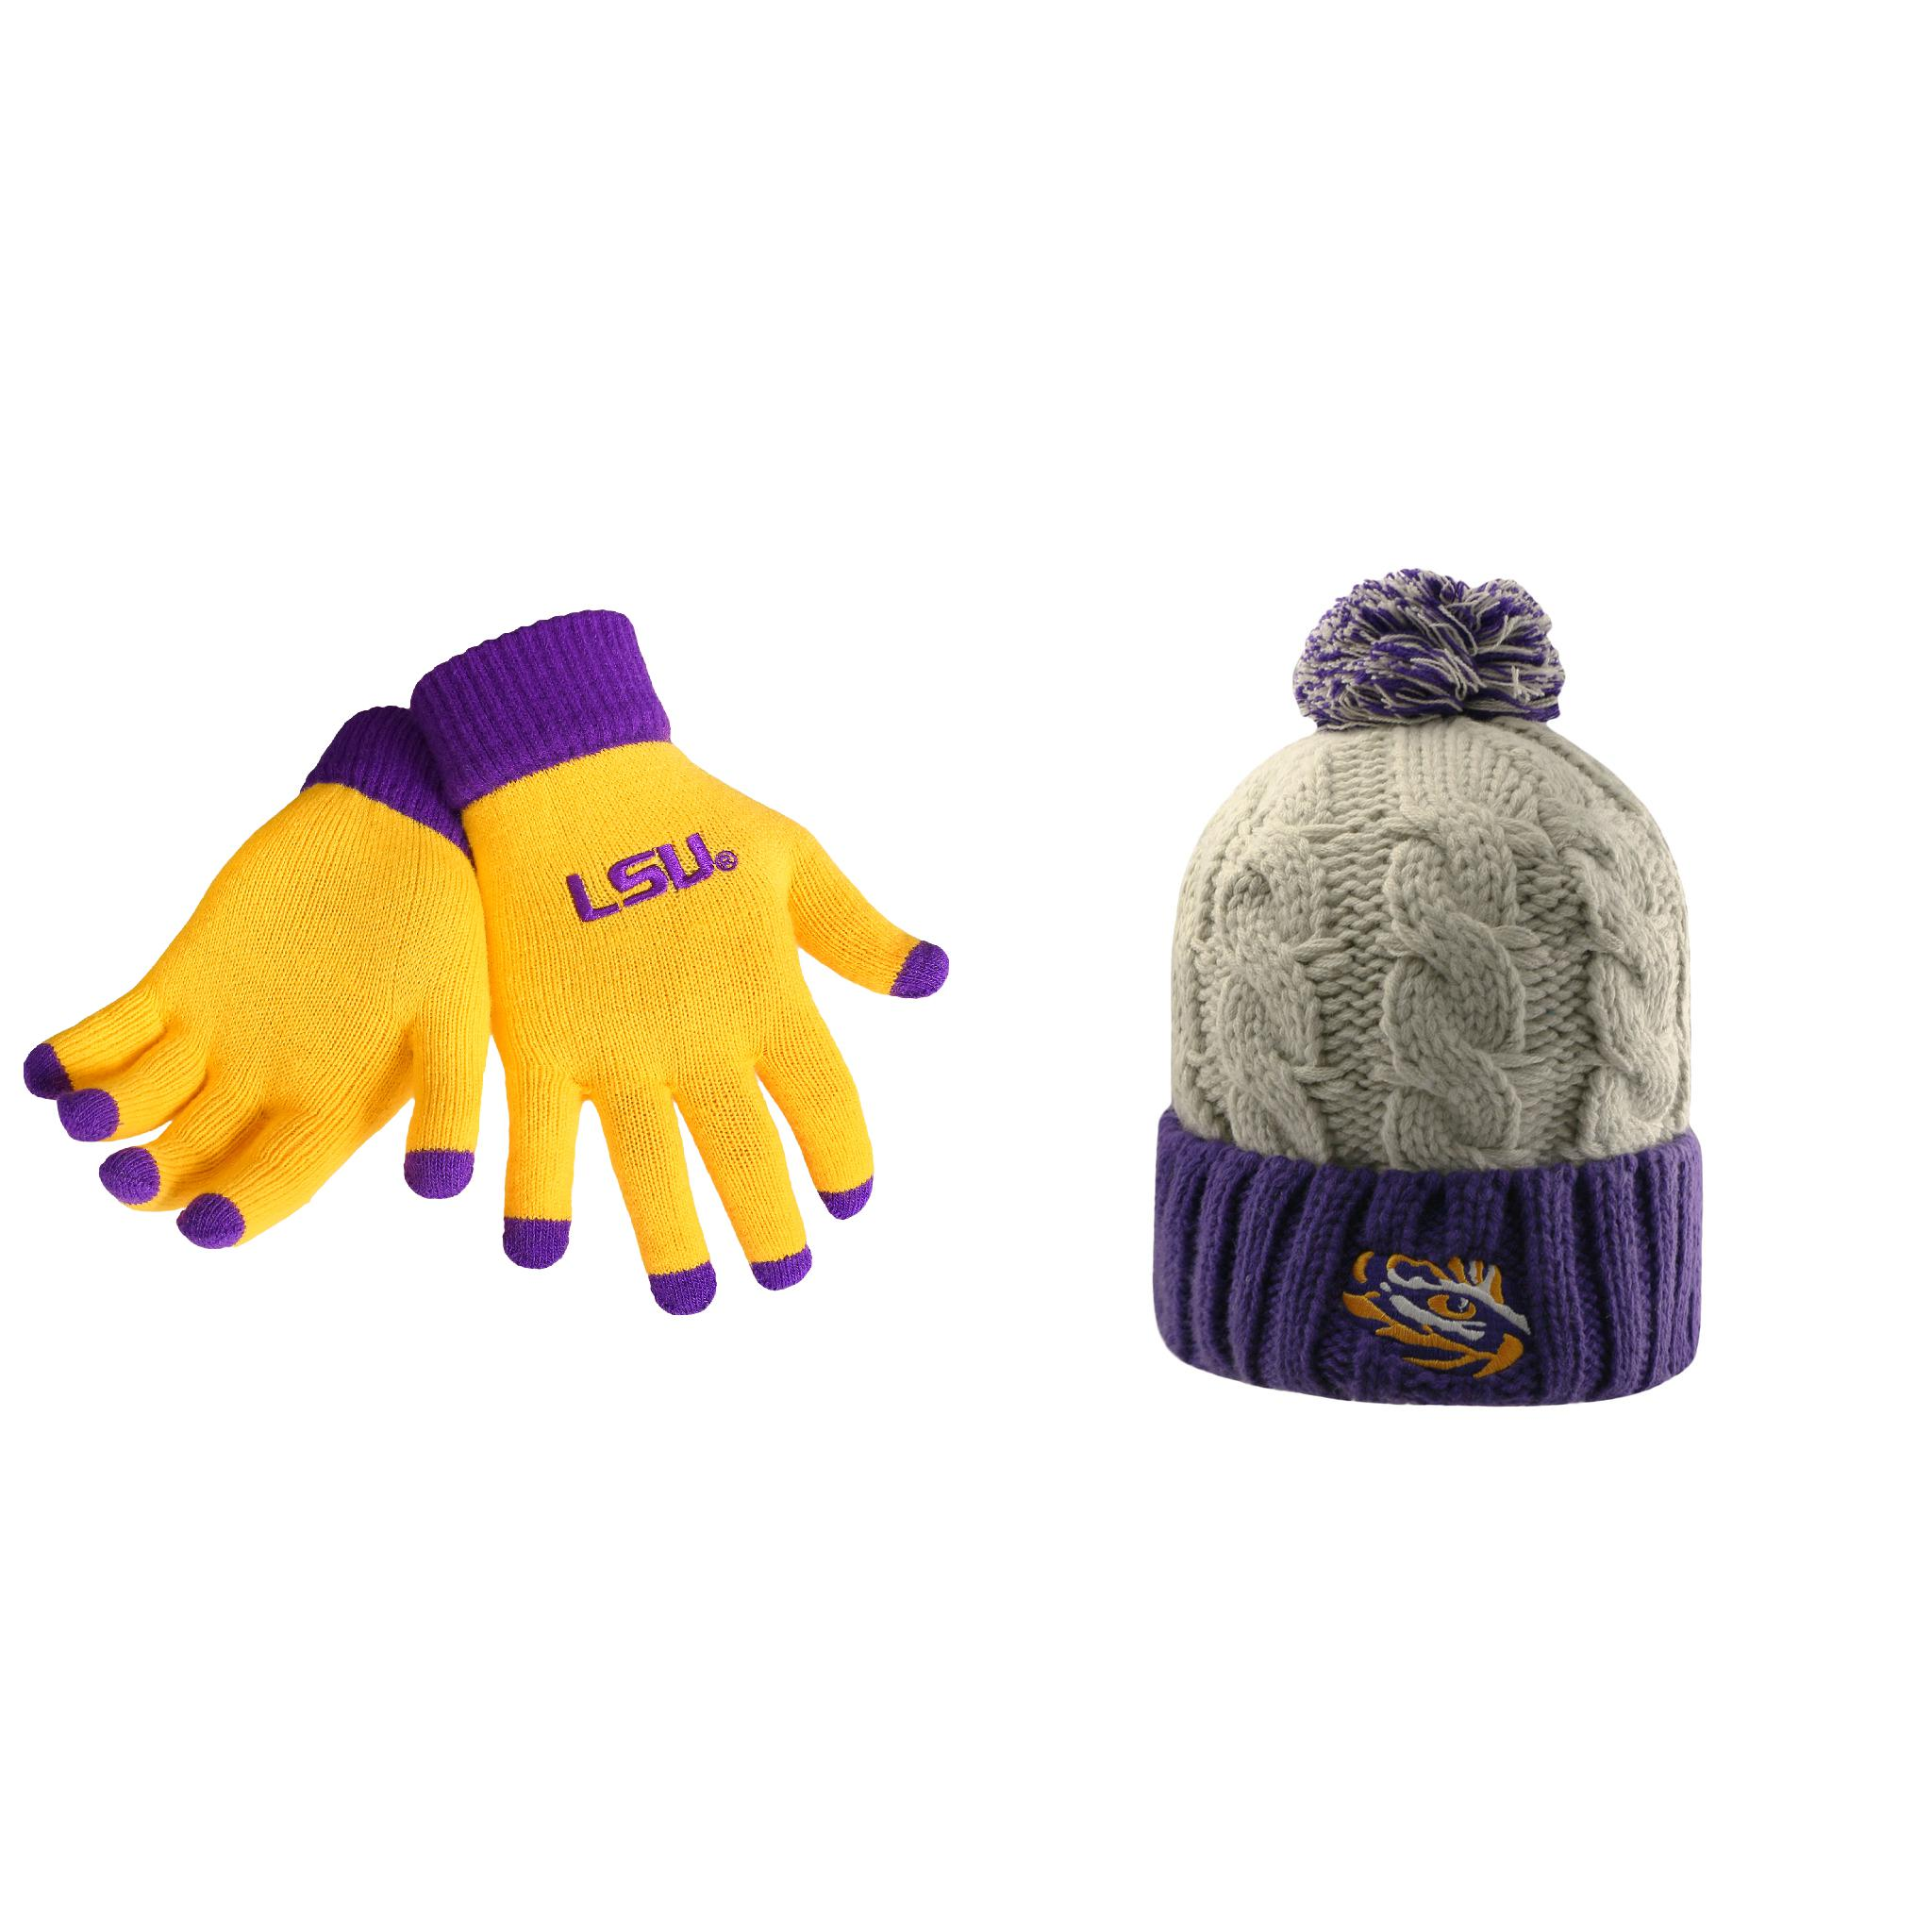 NCAA LSU Tigers Gust Beanie Hat And Glove Solid Knit 2 Pack Bundle